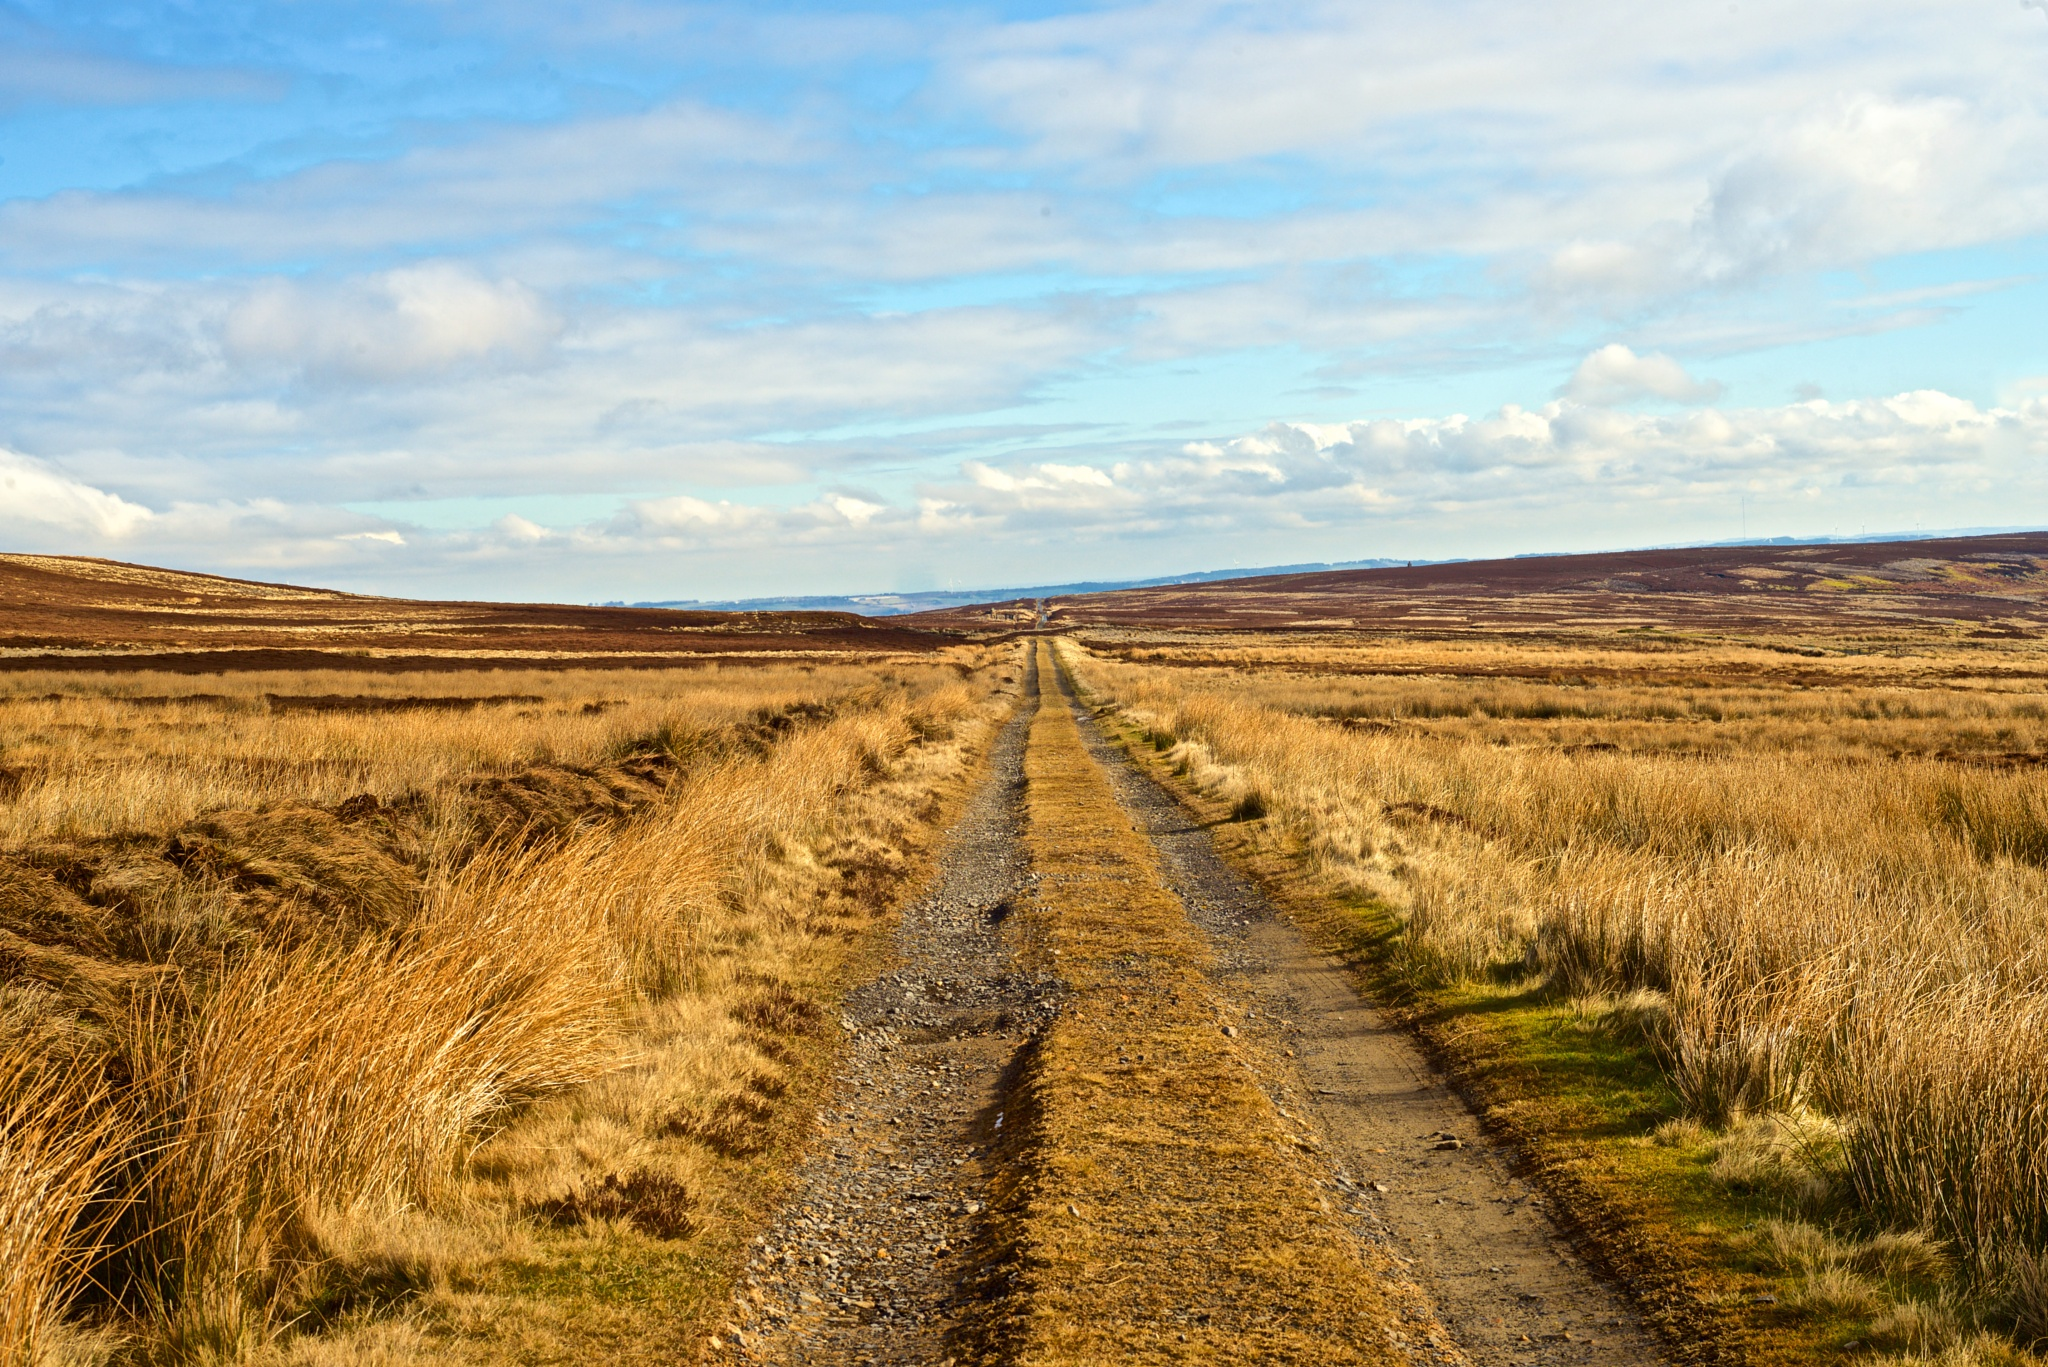 C2C Cycle route near Waskerley Reservoir county Durham by michael.summers.100